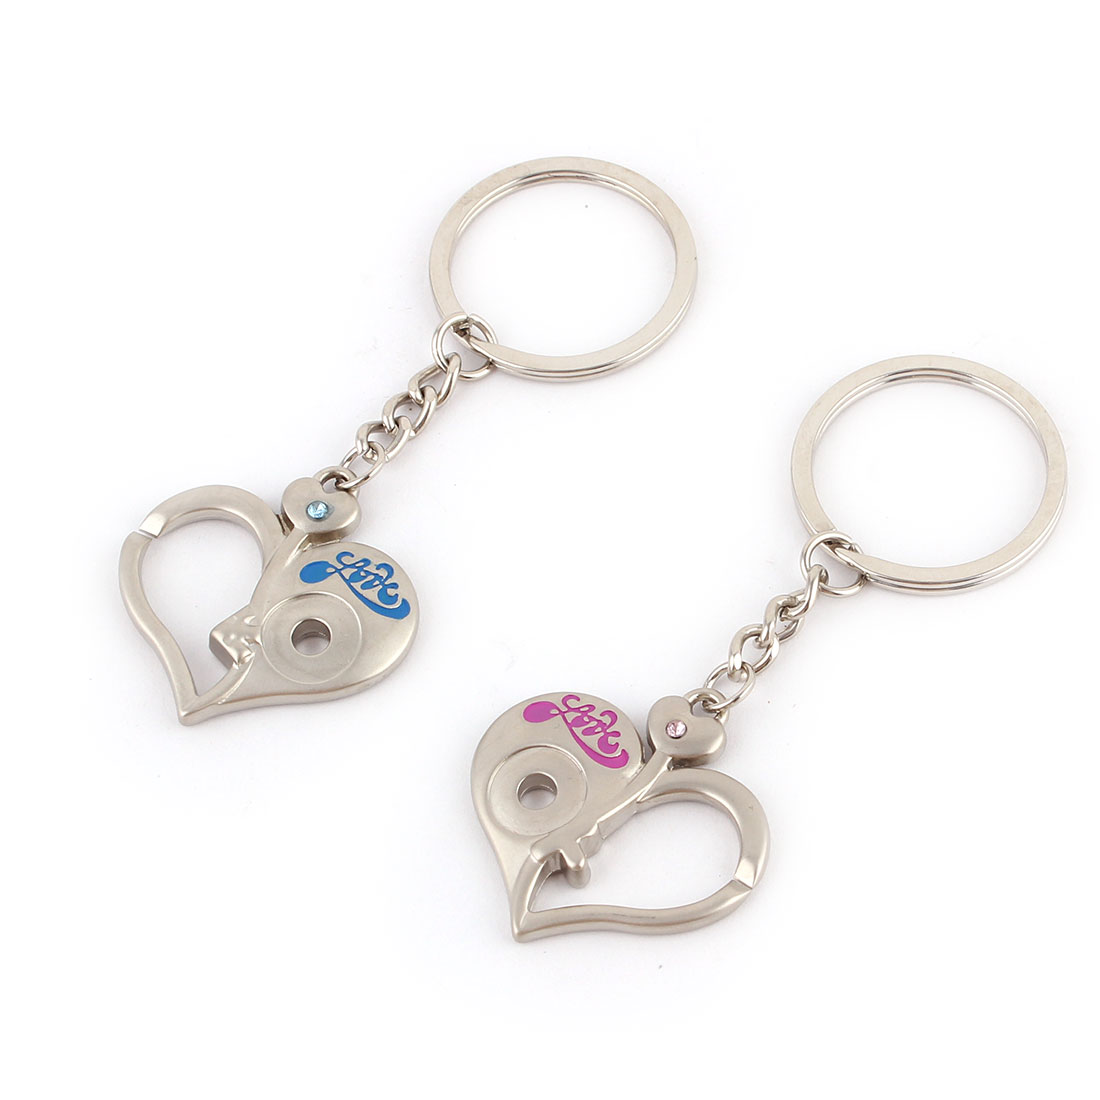 Travel Woman Ladies Metal Heart Decor Pendant Hook Clasp Keyring Keychain 2pcs